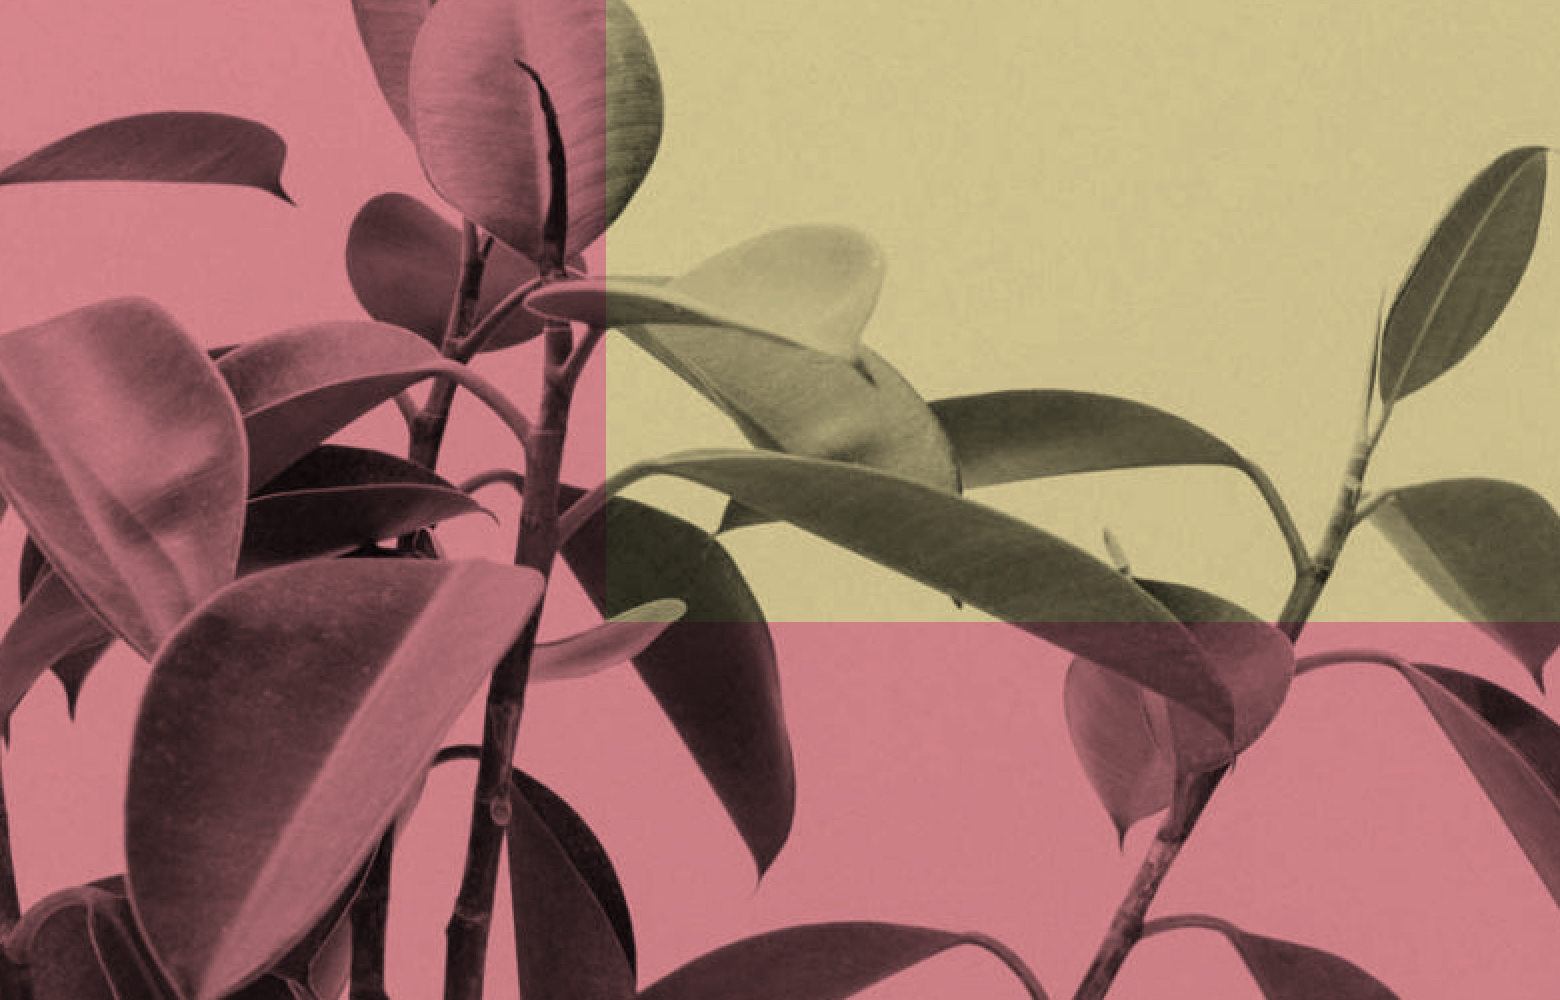 Abstract illustration, yellows and pinks with fica leaves.